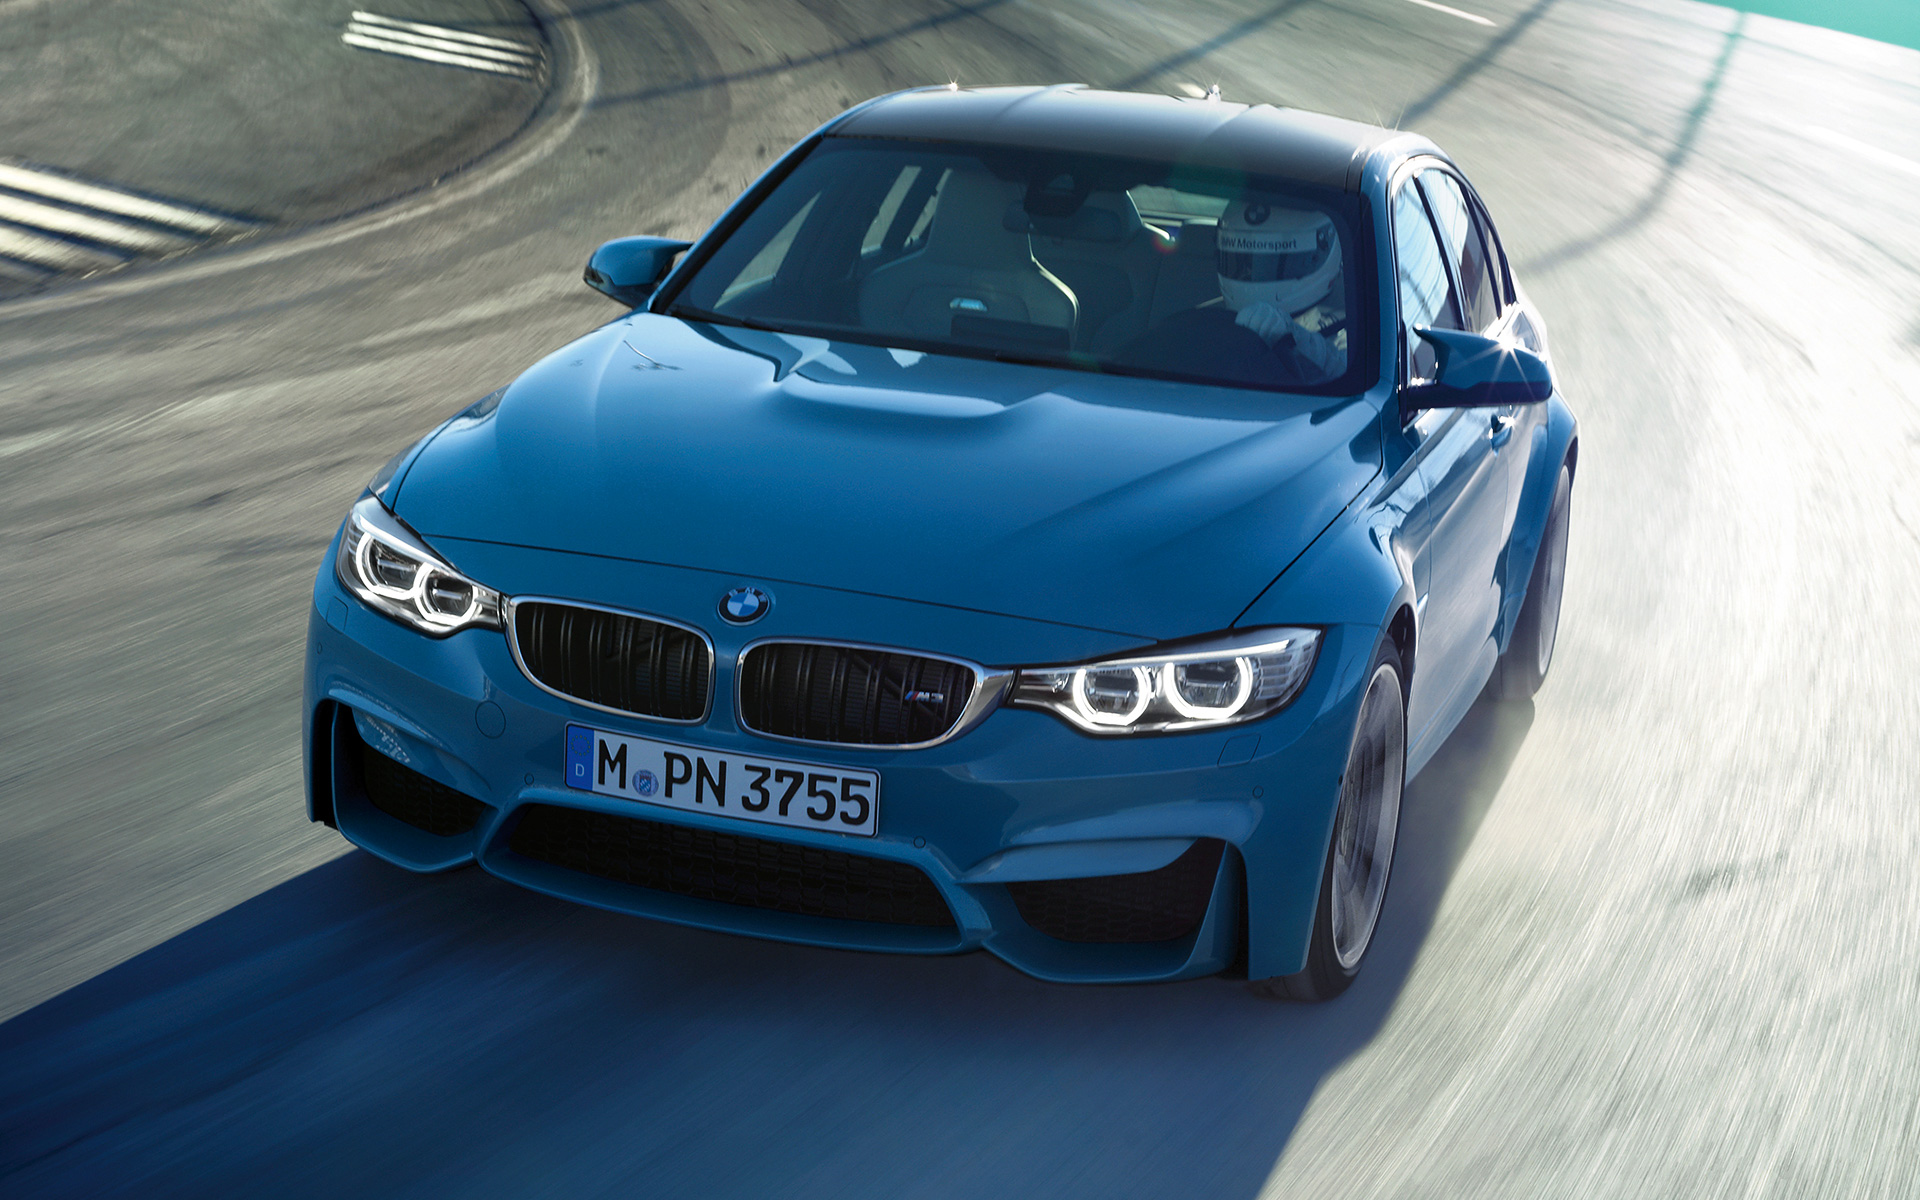 BMW M3 Sedan on race track